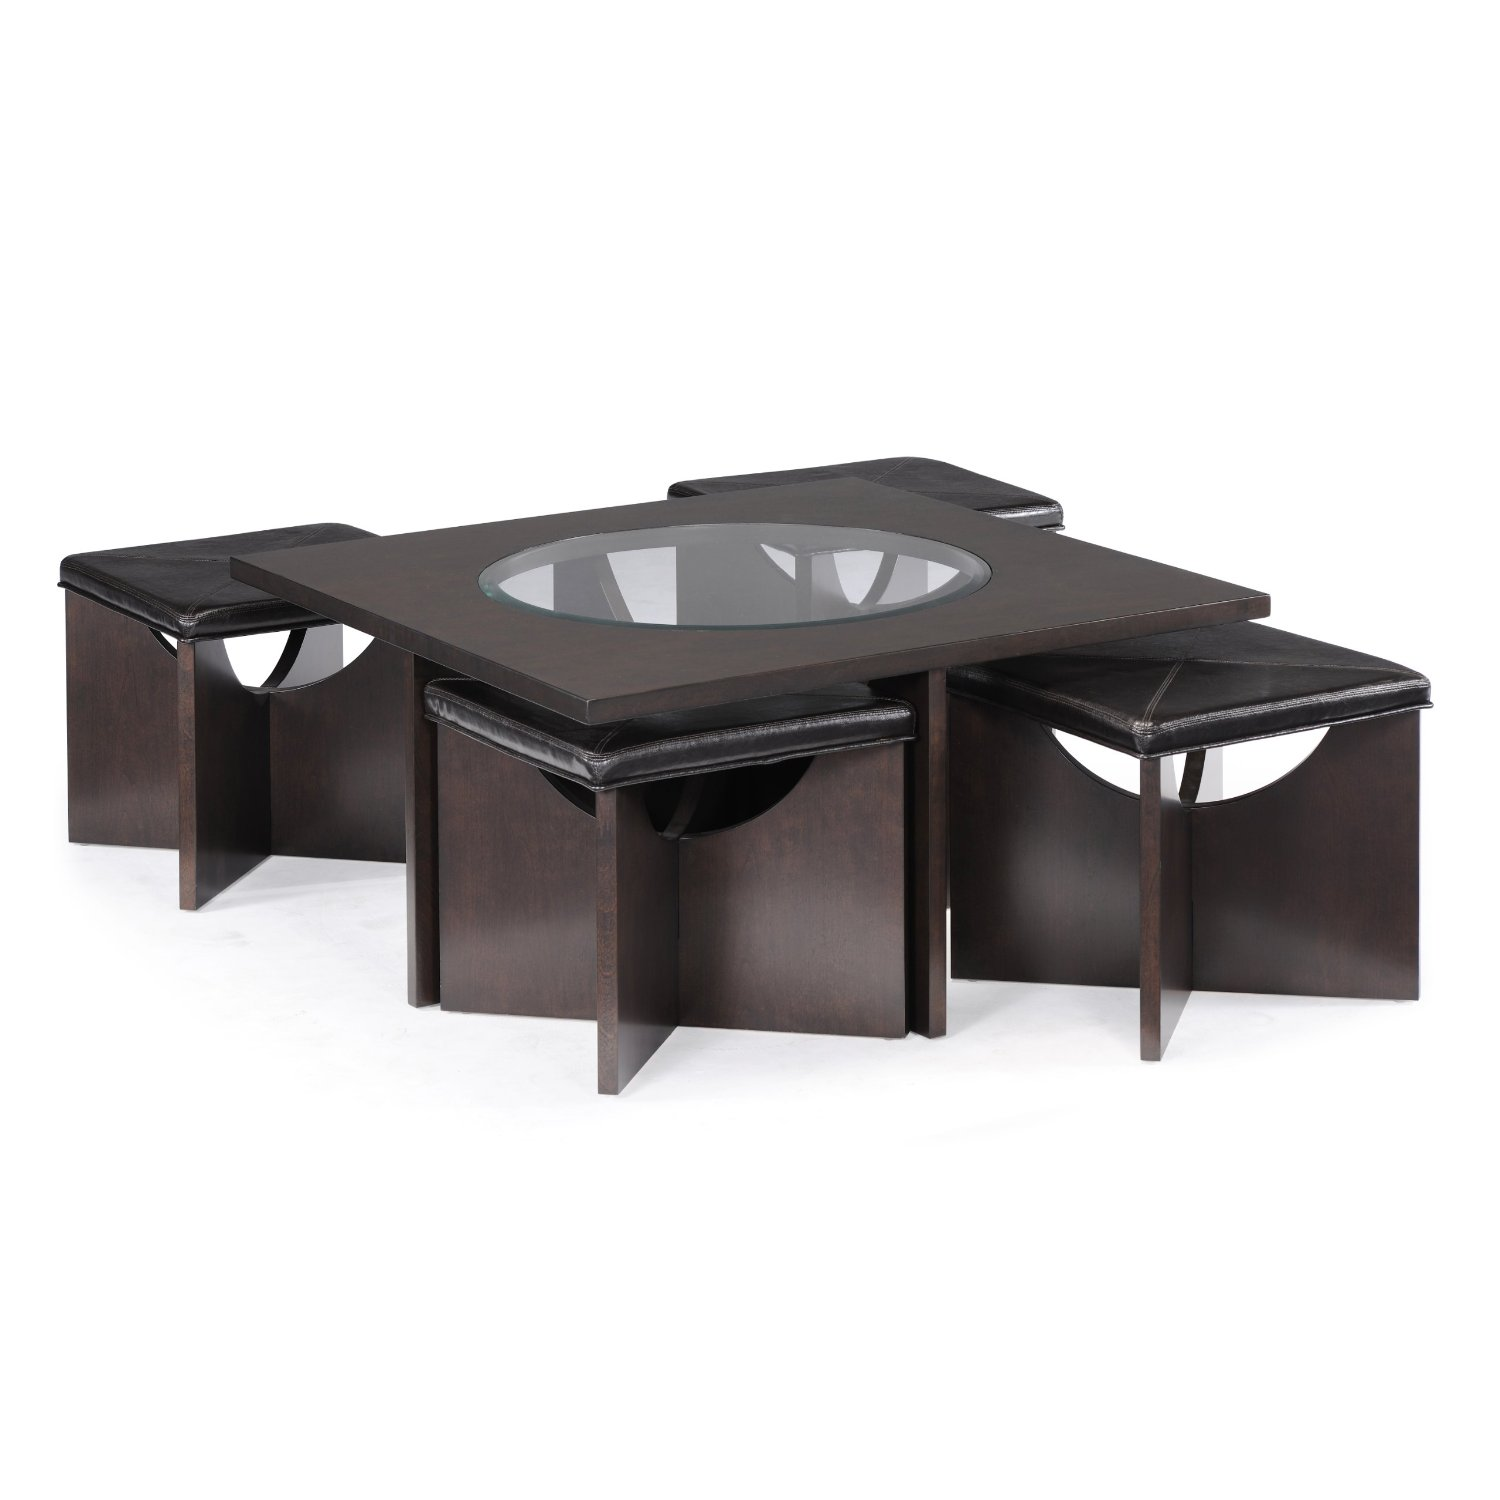 533 magnussen ozino wood and glass square cocktail table with 4 s 866 594 6890 - Glass coffee table with stools underneath ...